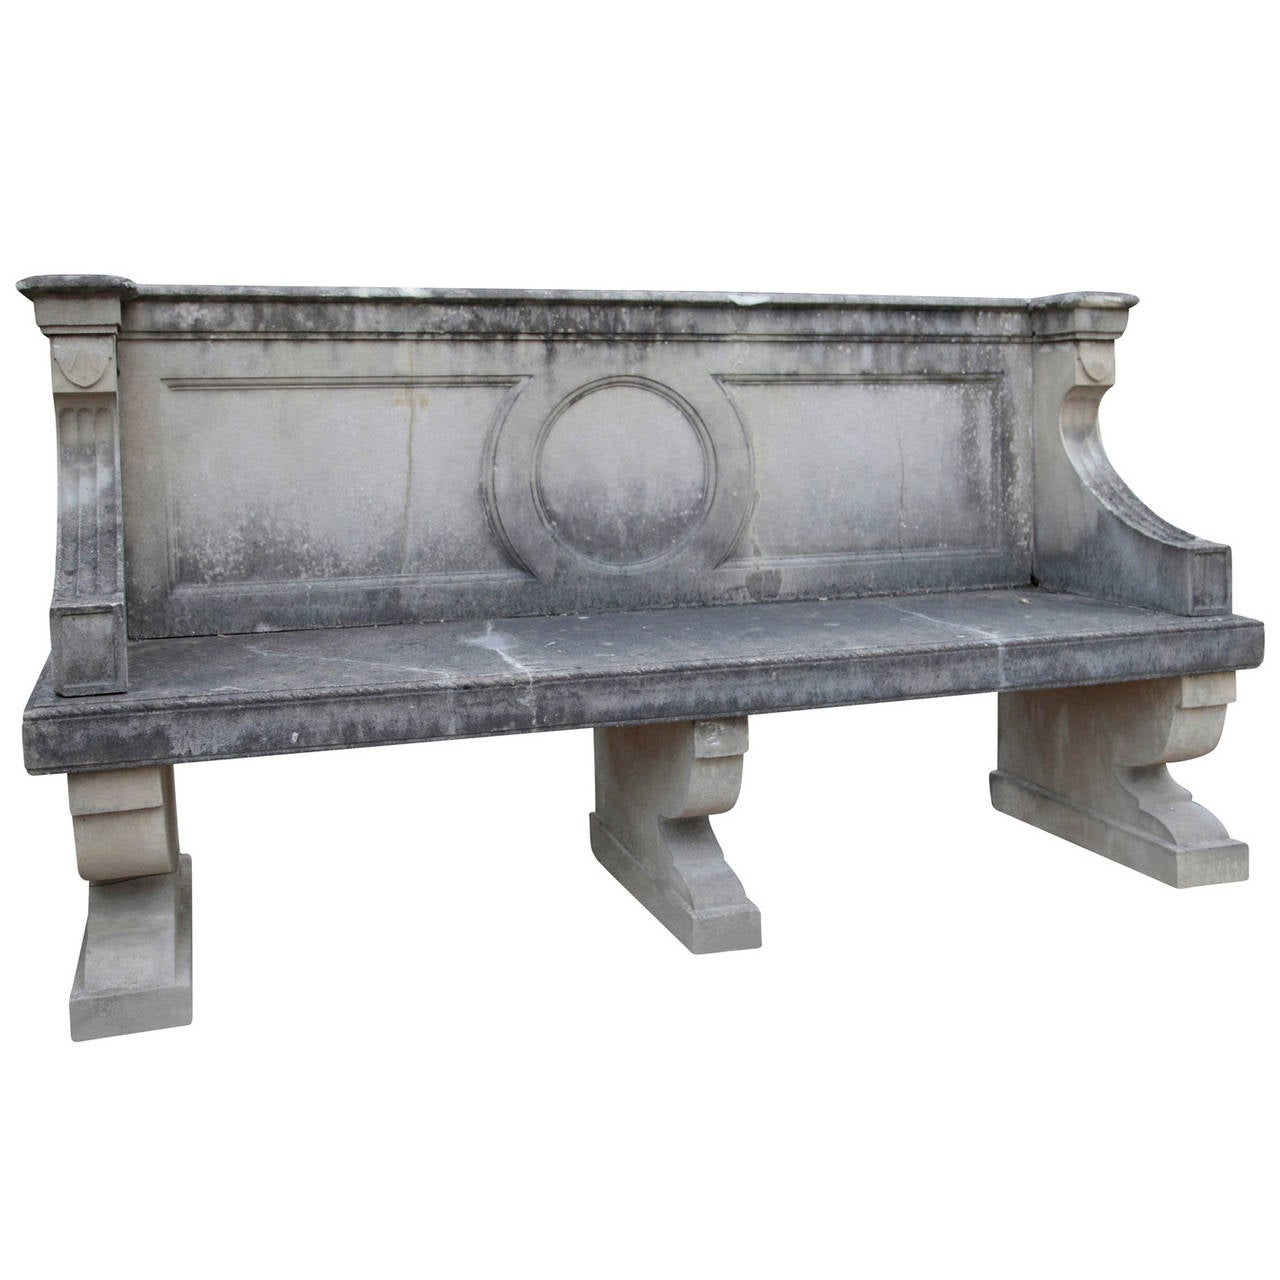 Elegant English Park Bench from the 20th Century